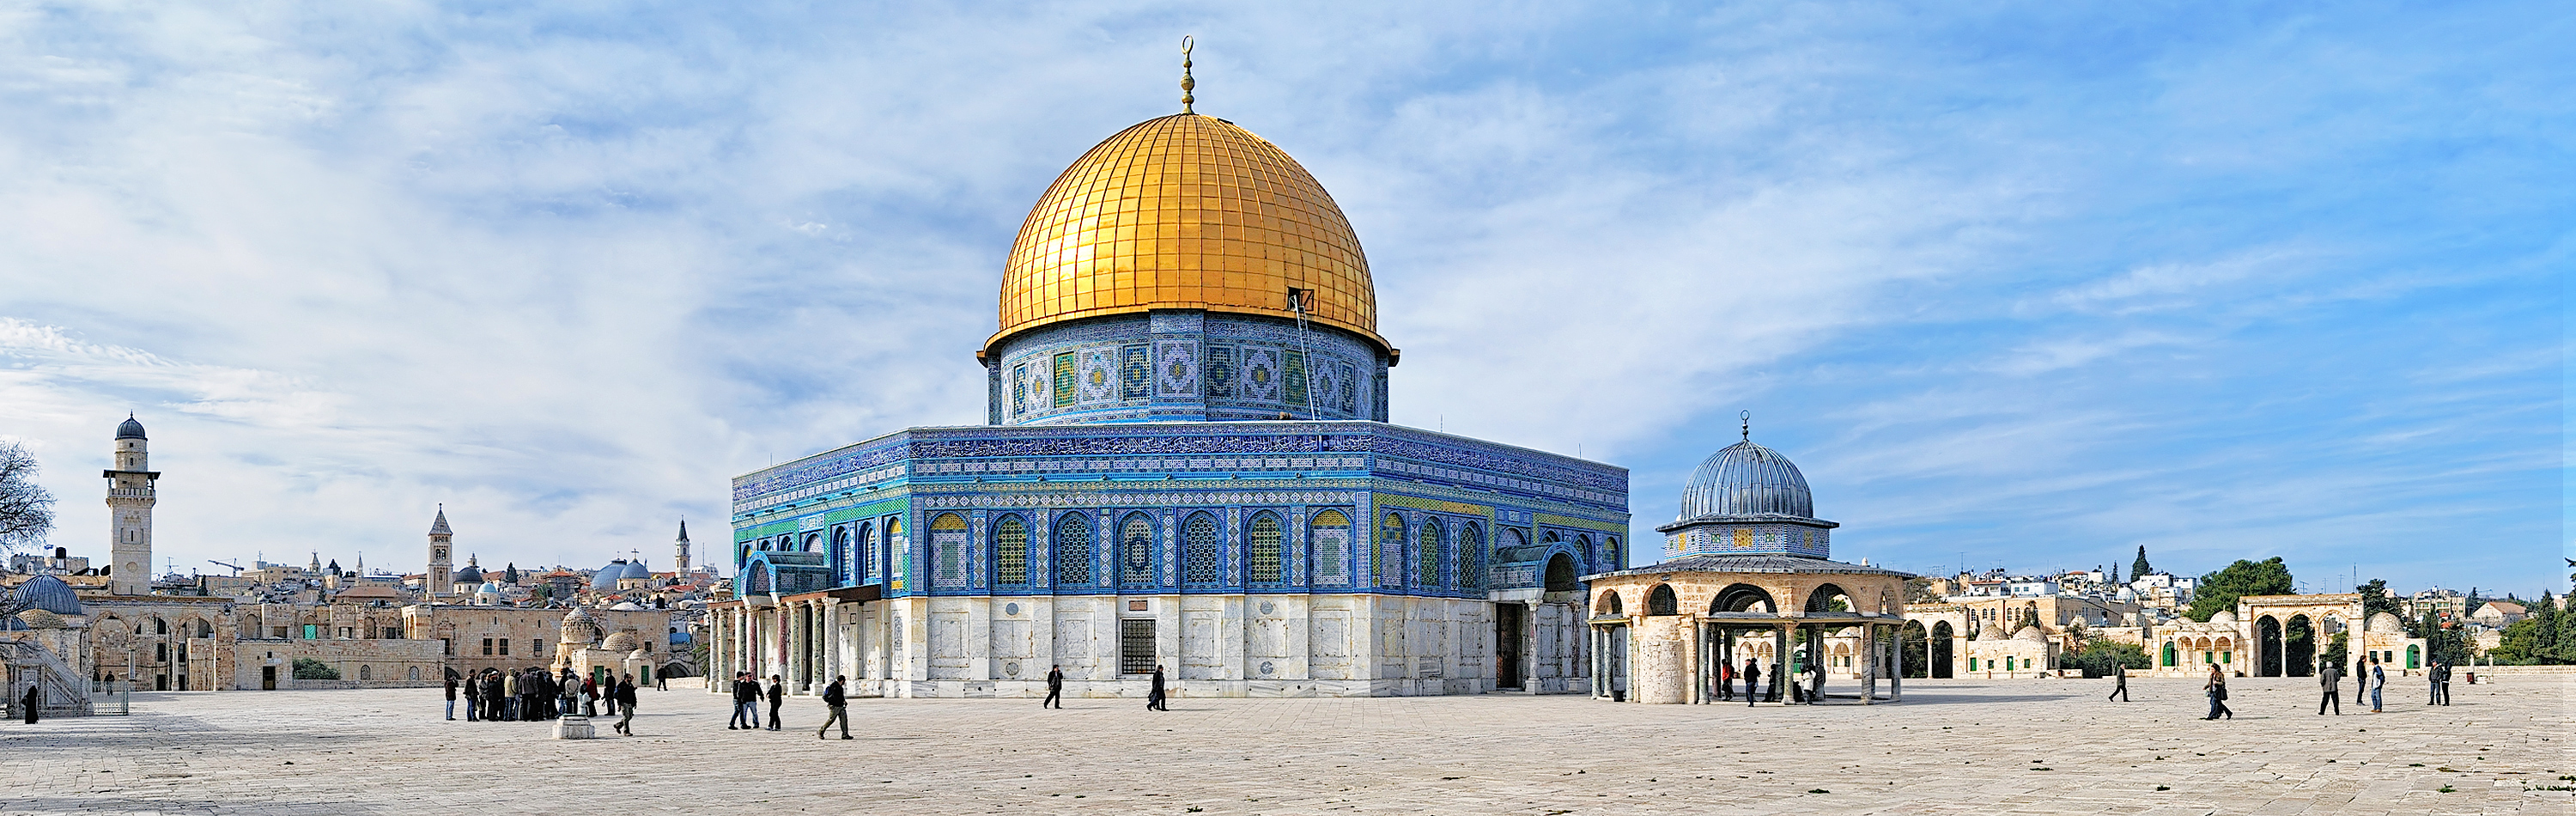 Isreal Tour - Dome of the Rock Mosque in Jerusalem